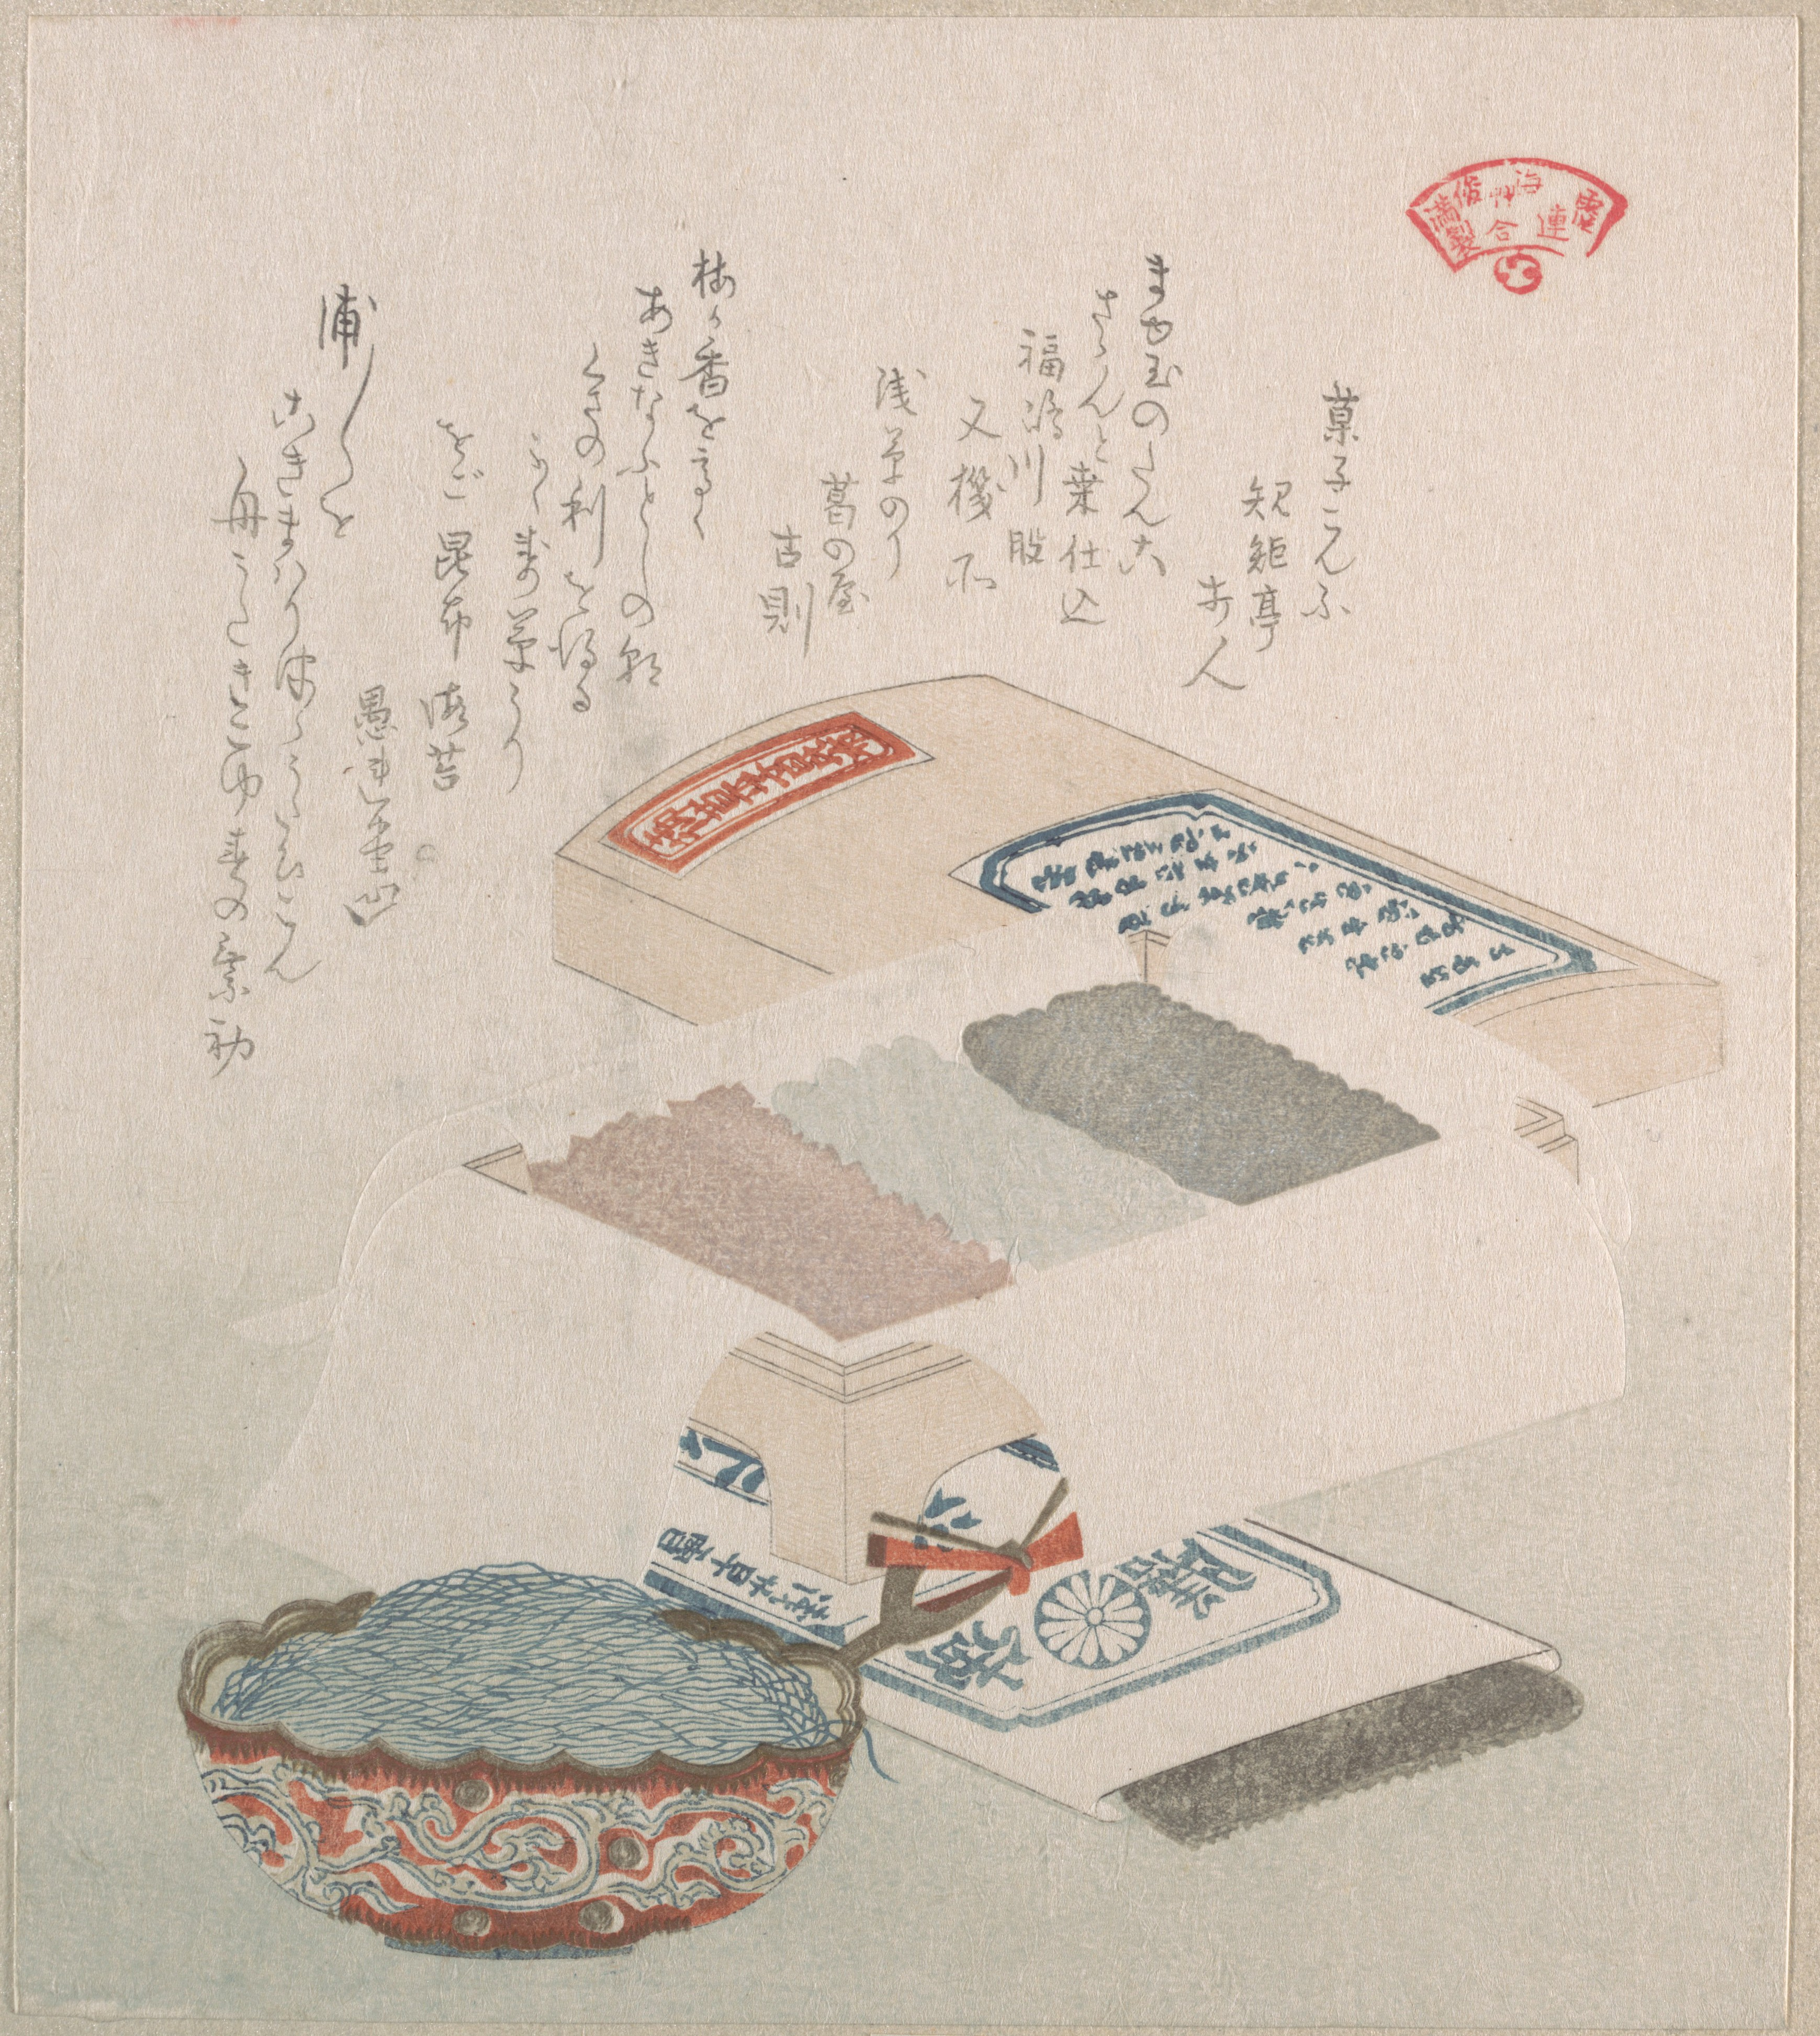 https://upload.wikimedia.org/wikipedia/commons/5/55/Cakes_and_Food_Made_of_Seaweed_by_Kubo_Shunman.jpg